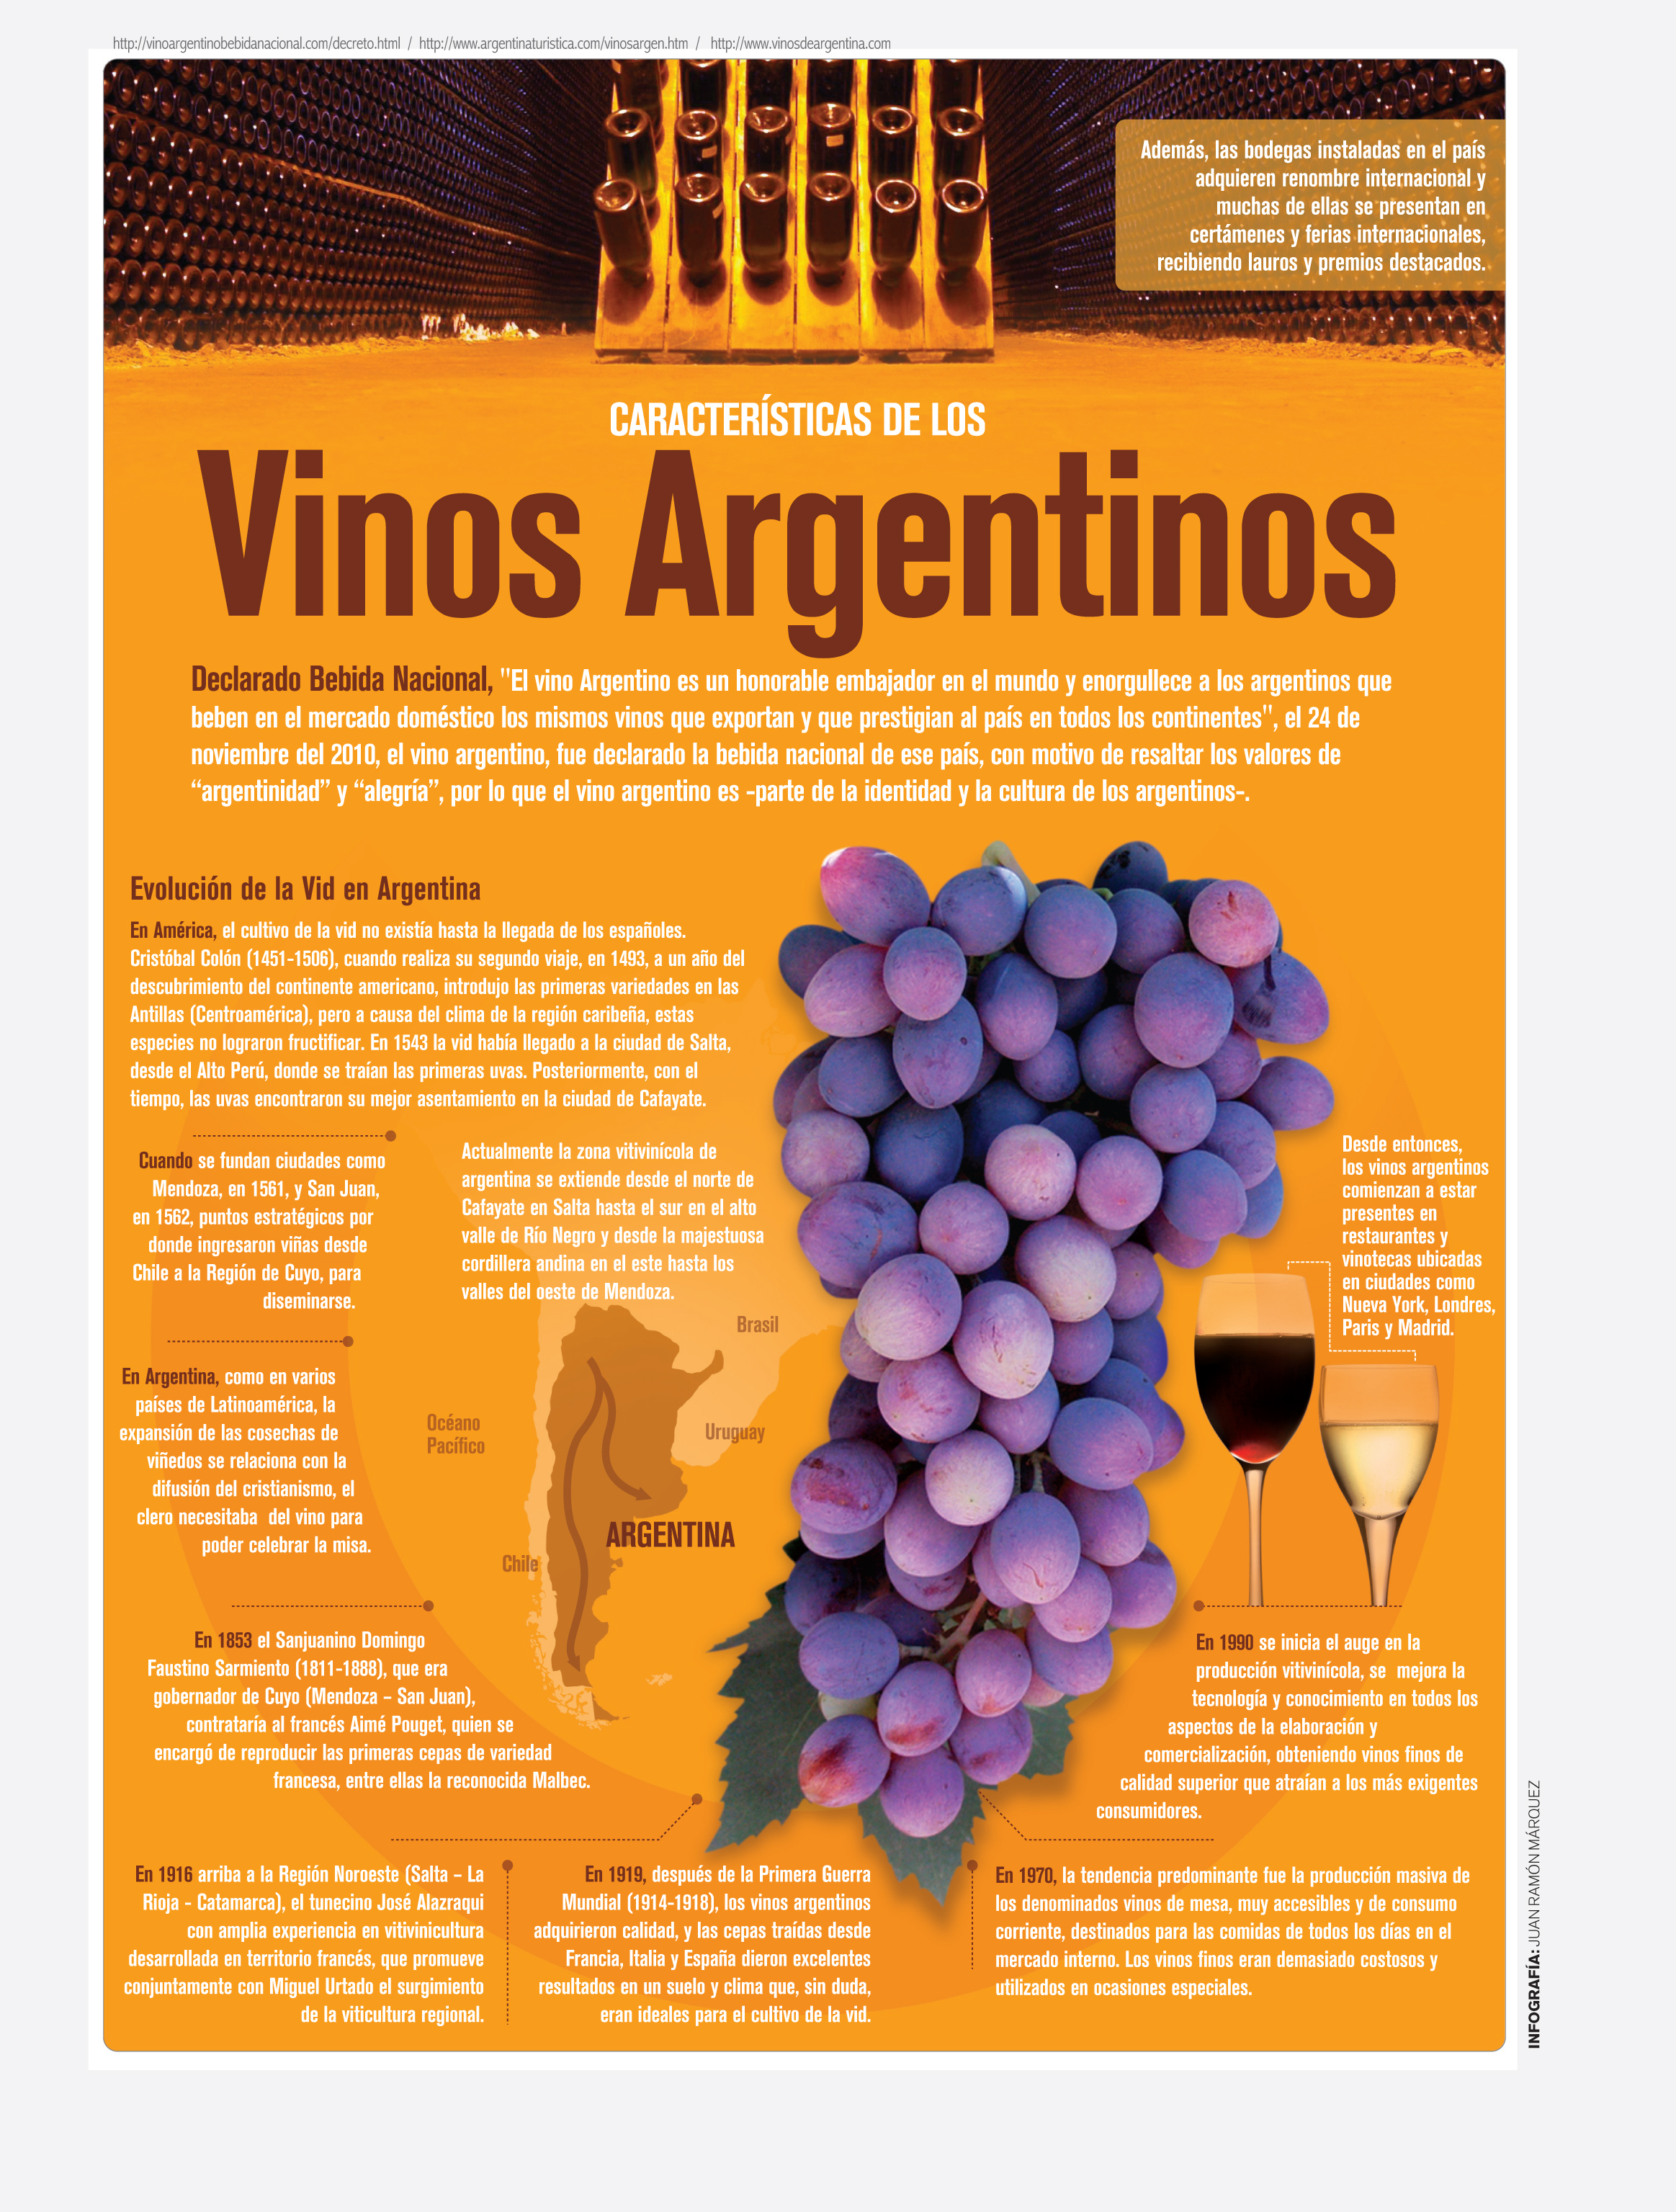 Caracter sticas de los vinos argentinos revista el conocedor for Revistas del espectaculo argentino